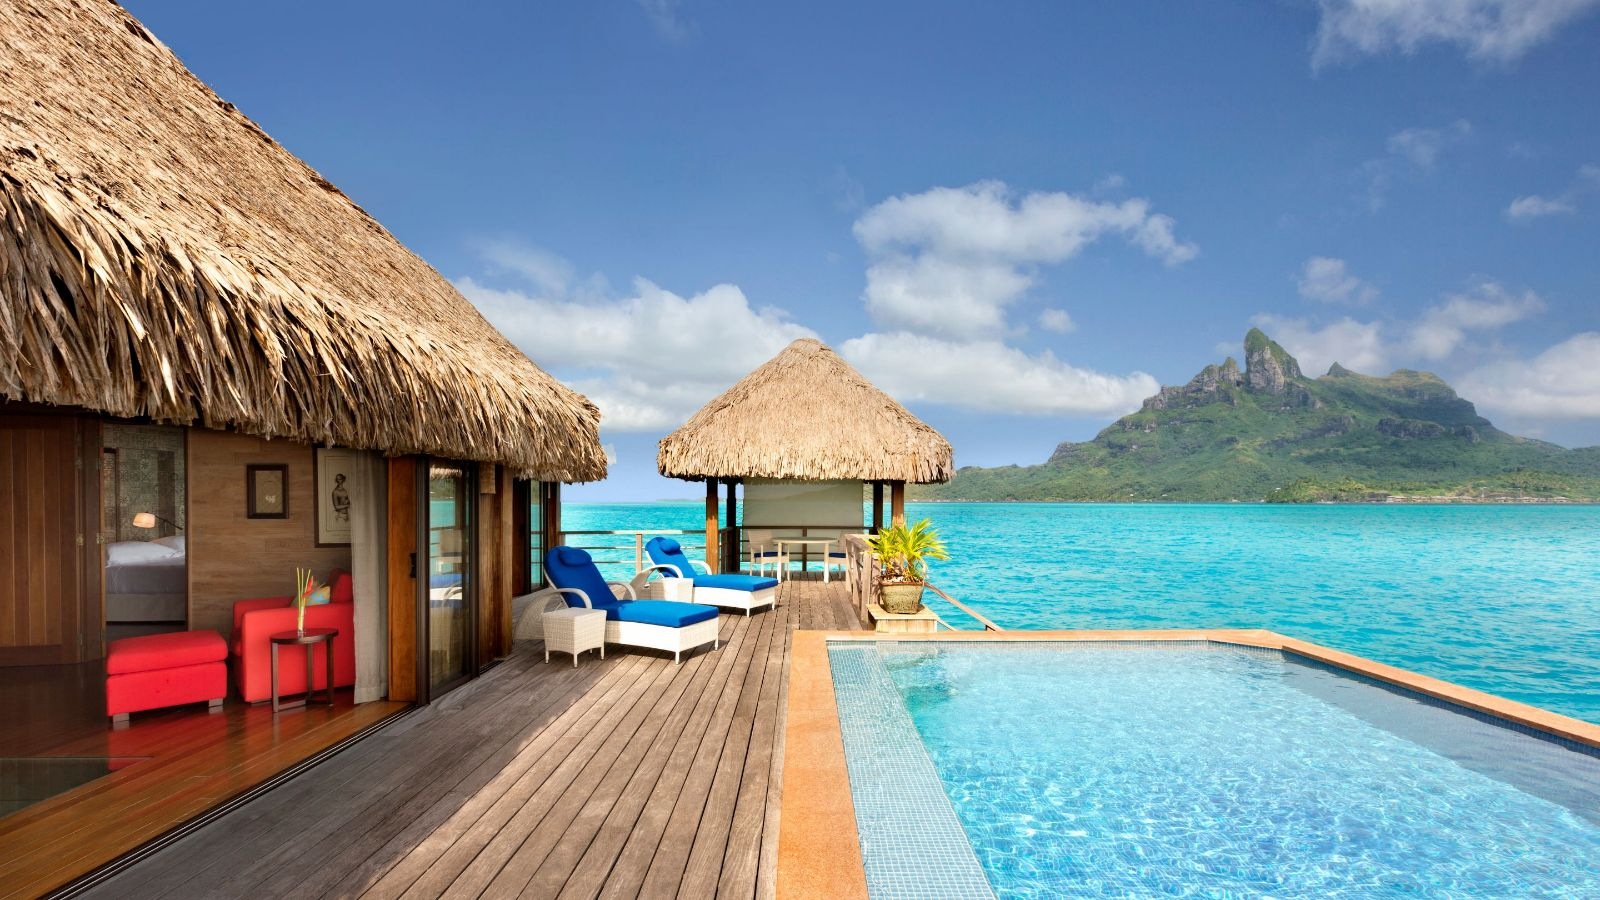 Bora bora resort the st regis bora bora resort for Villas polinesia